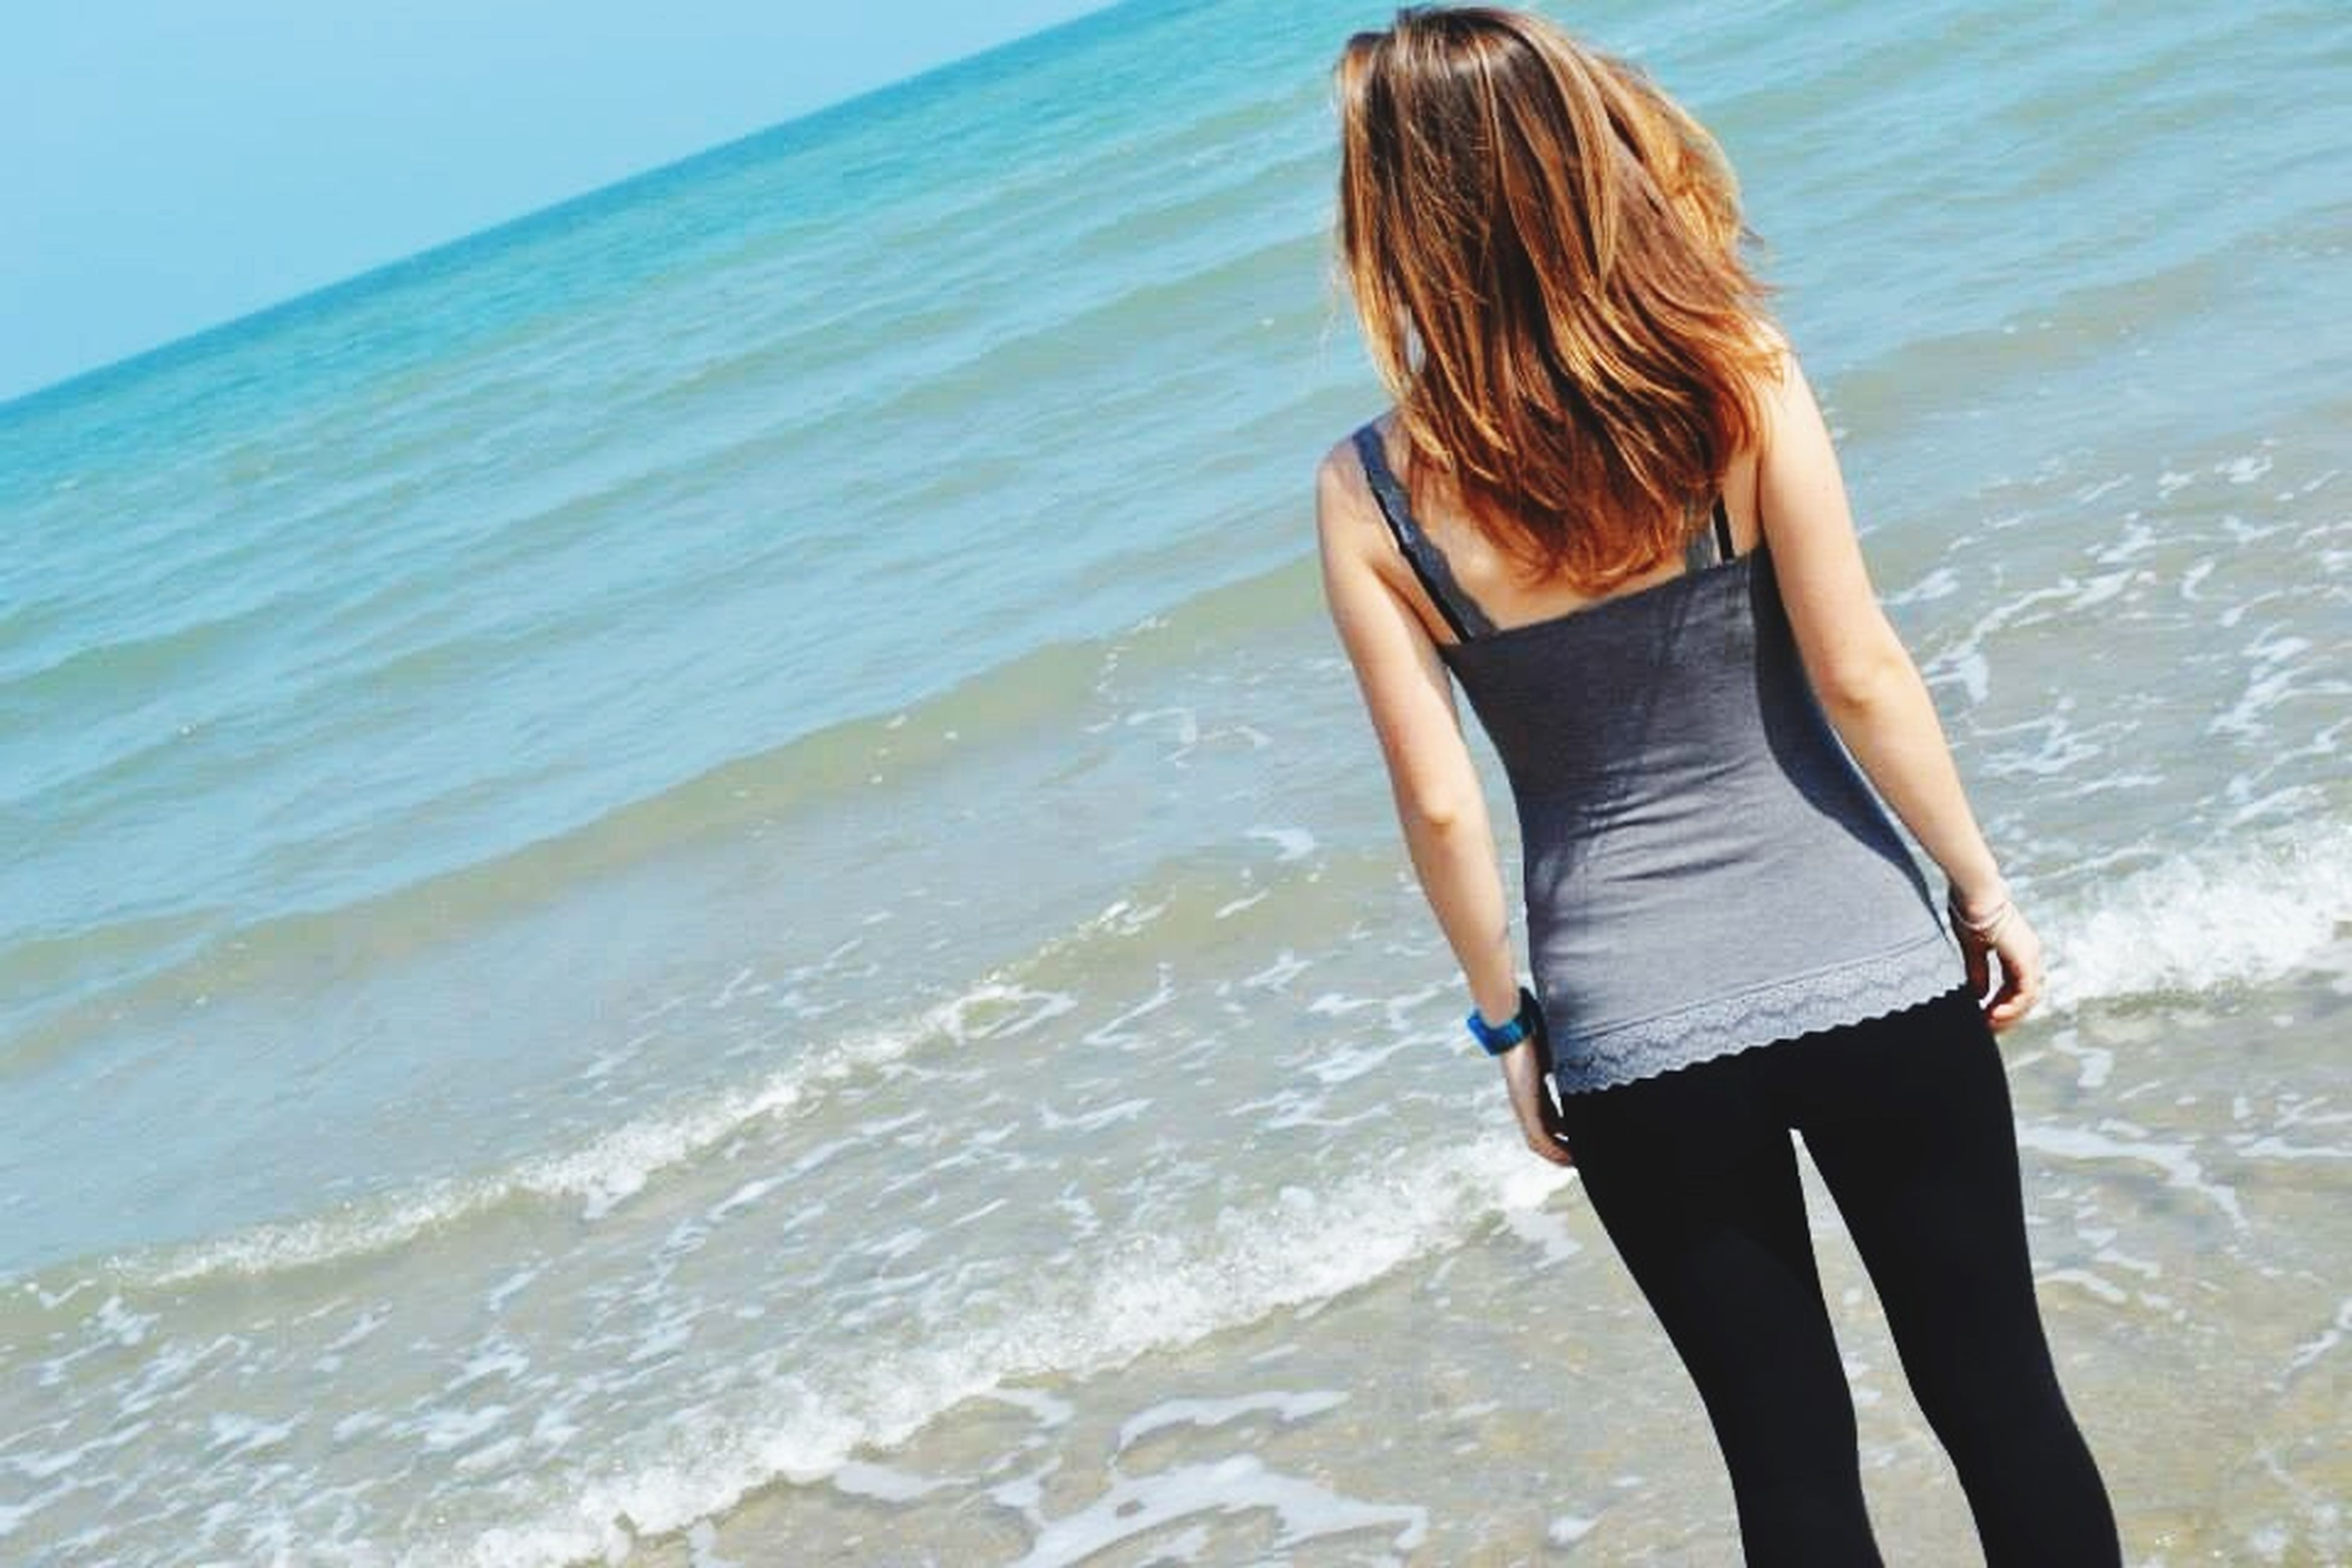 sea, water, beach, leisure activity, lifestyles, rear view, horizon over water, standing, vacations, shore, person, long hair, young women, full length, casual clothing, beauty in nature, nature, tranquility